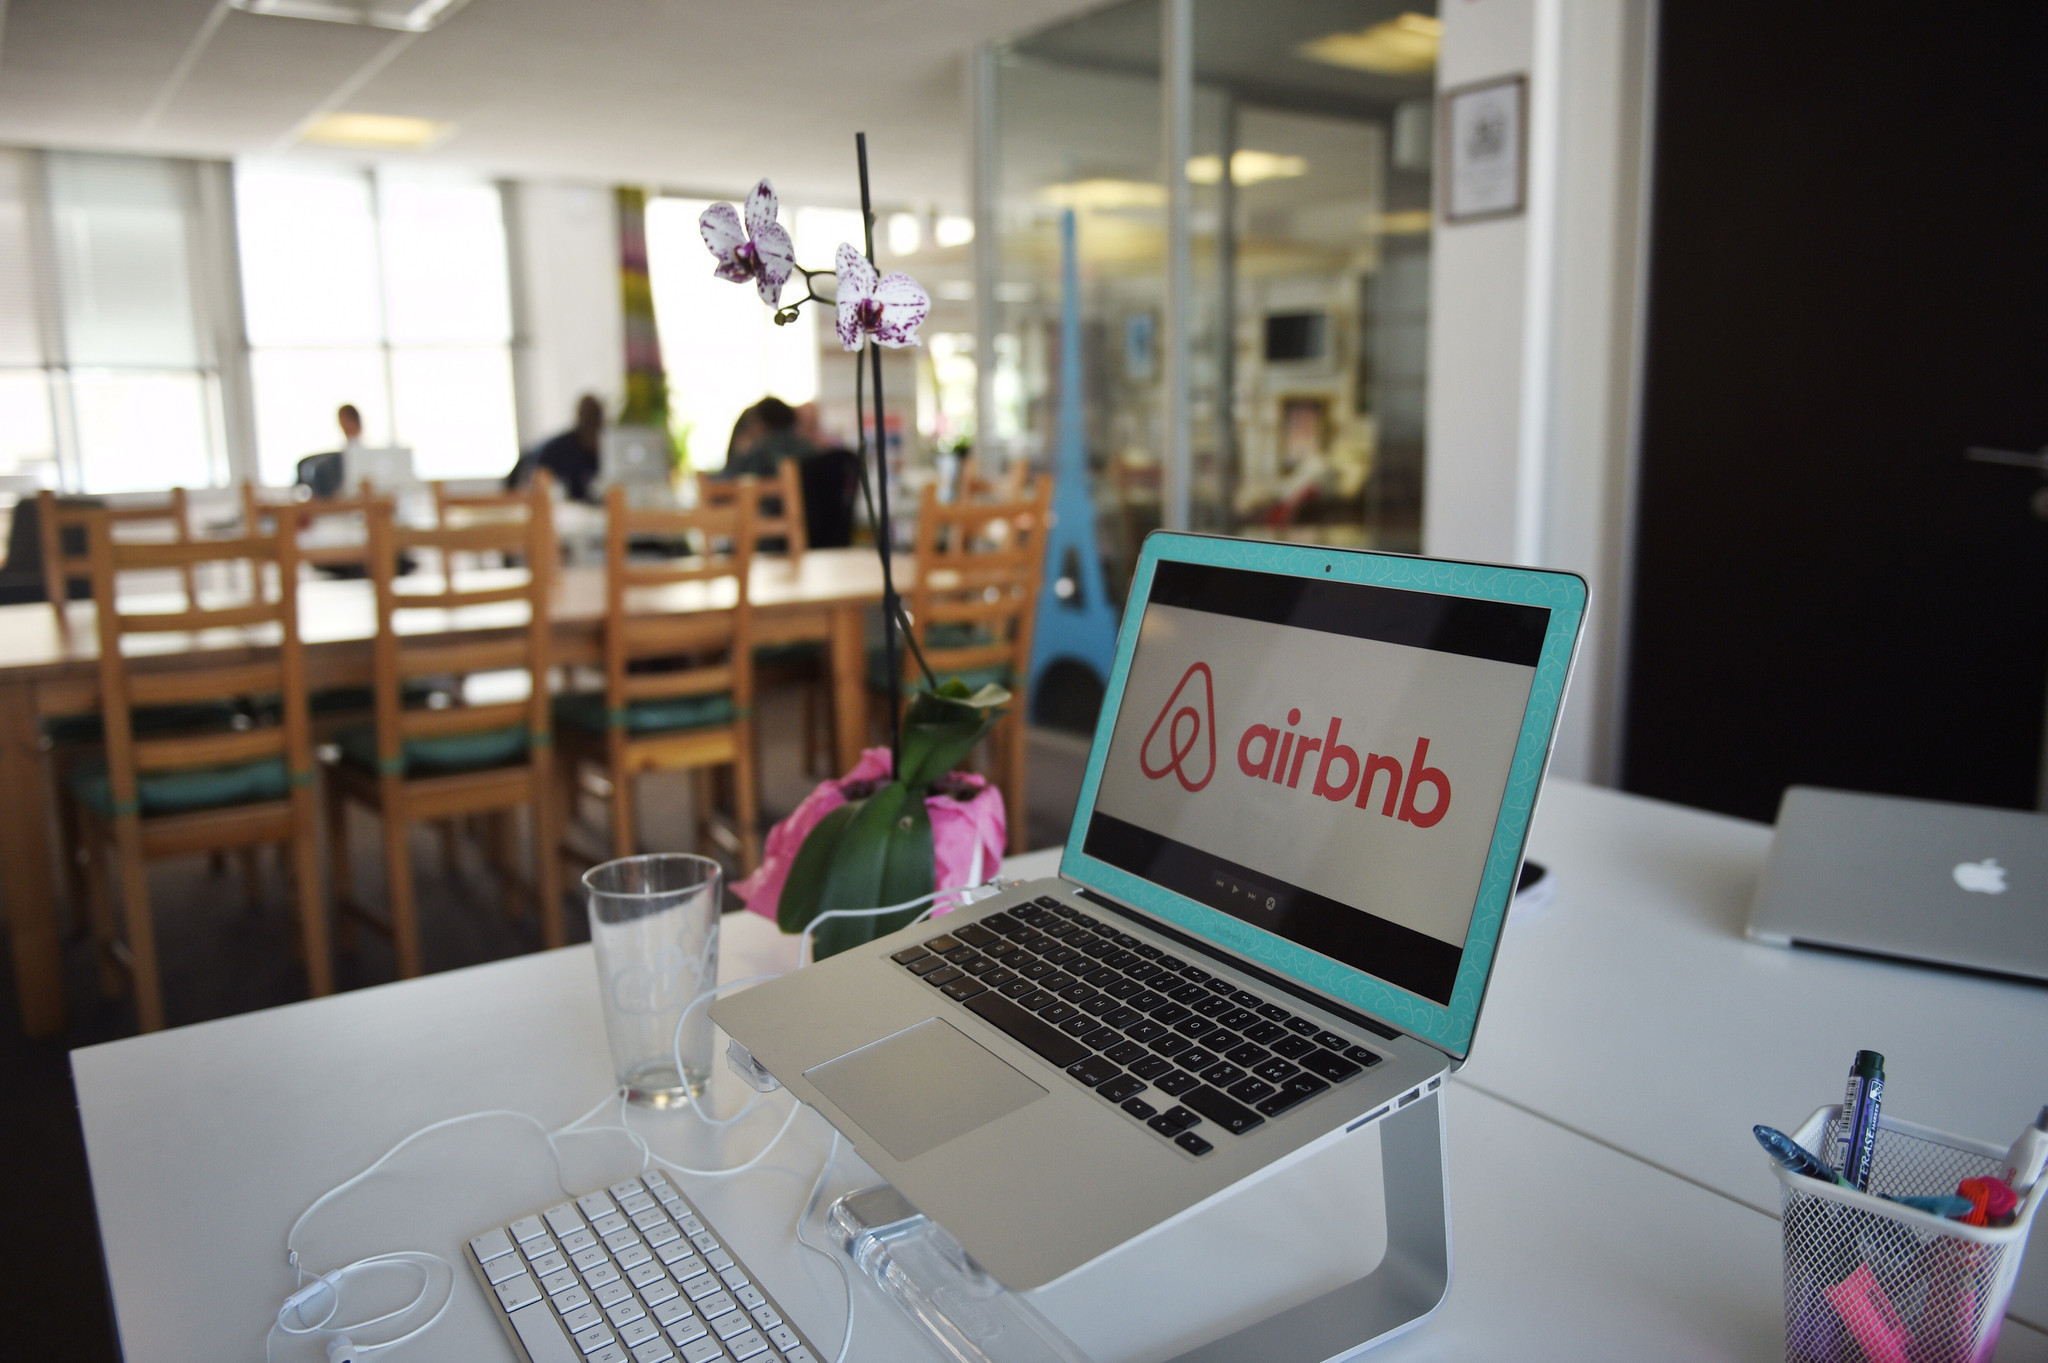 Airbnb hosts are more likely to reject guests with disabilities, study finds - Orlando Sentinel